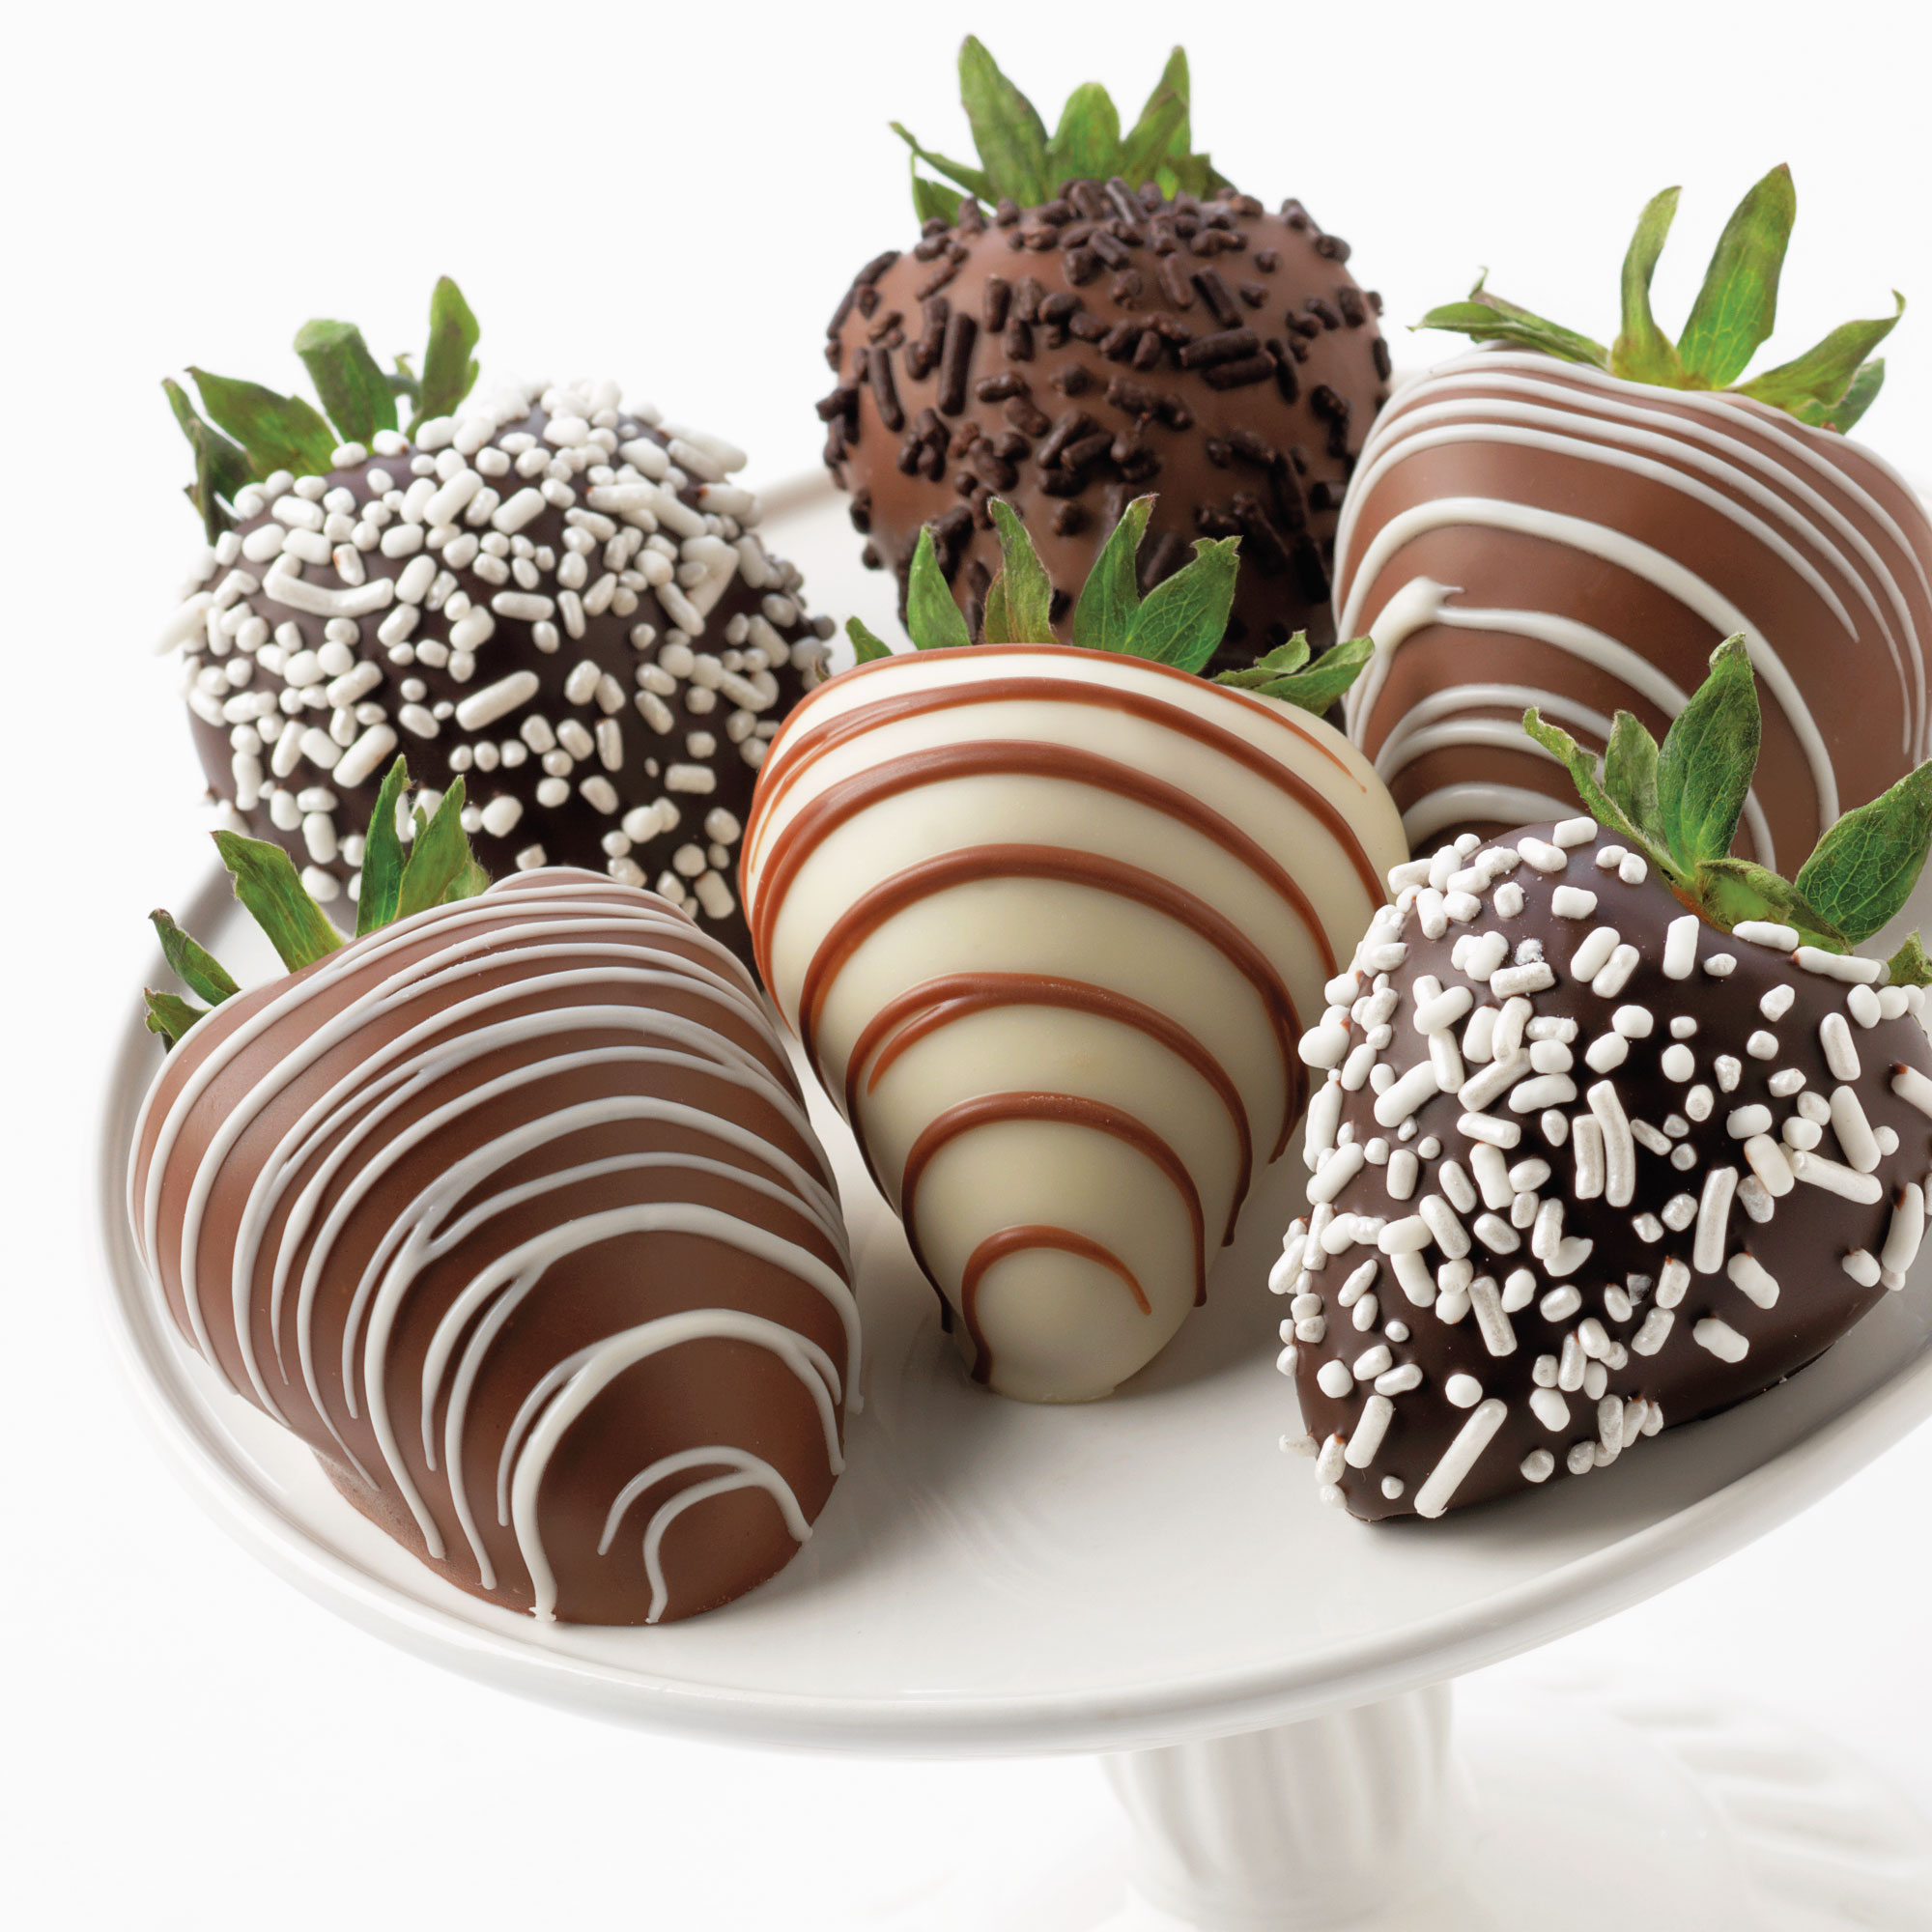 U555u | Images: Images Of Chocolate Covered Strawberries